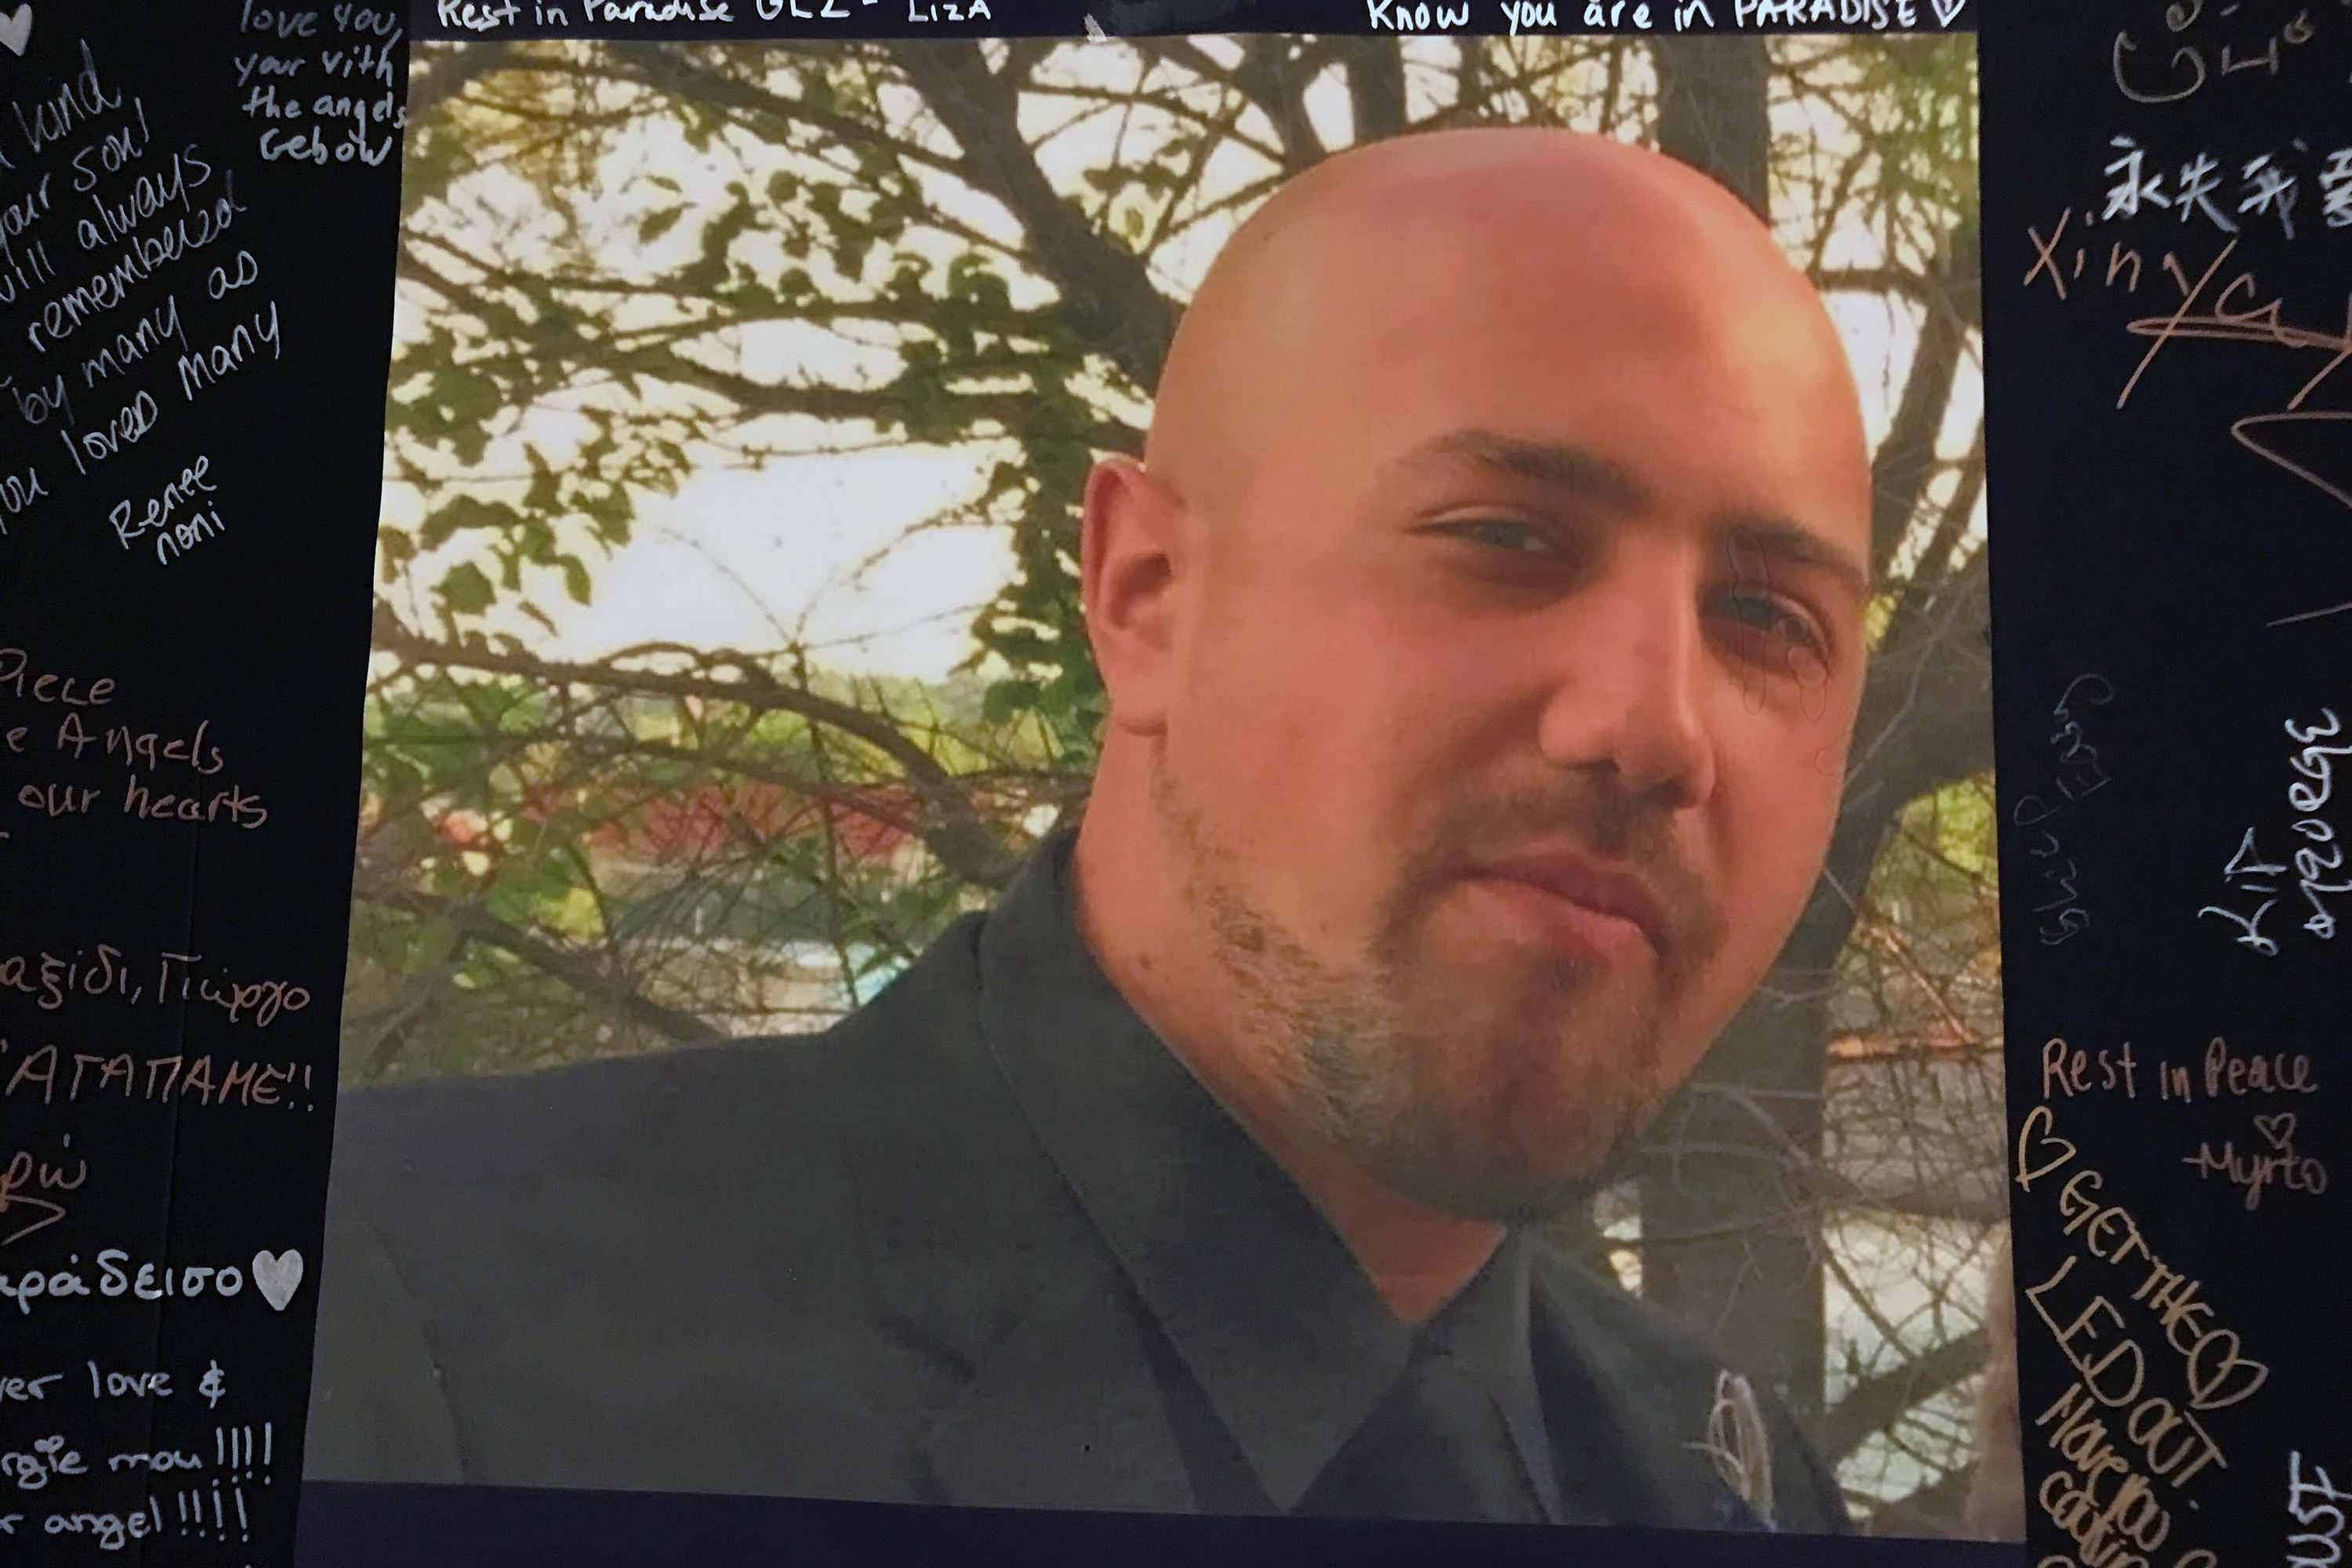 George Zapantis' mother set up a memorial in her Whitestone, Queens home after her 29-year-old son died on June 21 after being tased multiple times by NYPD officers.